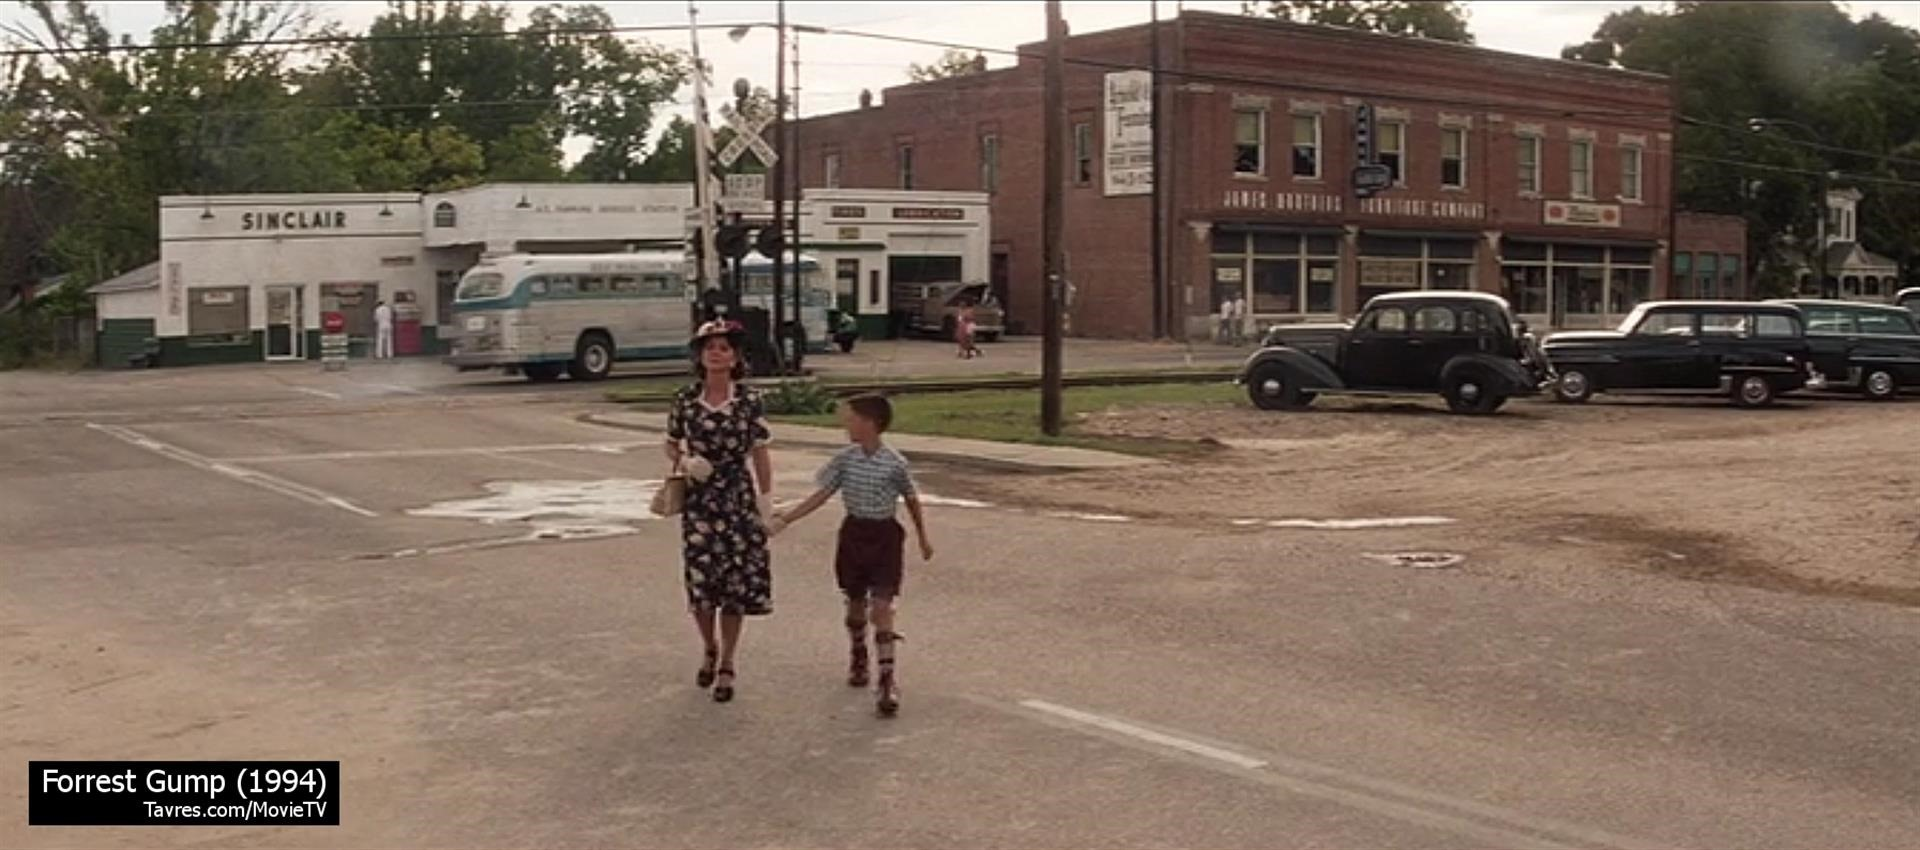 Forrest Gump (1994) - Main Street Greenbow 1955 | Movie & TV Locations